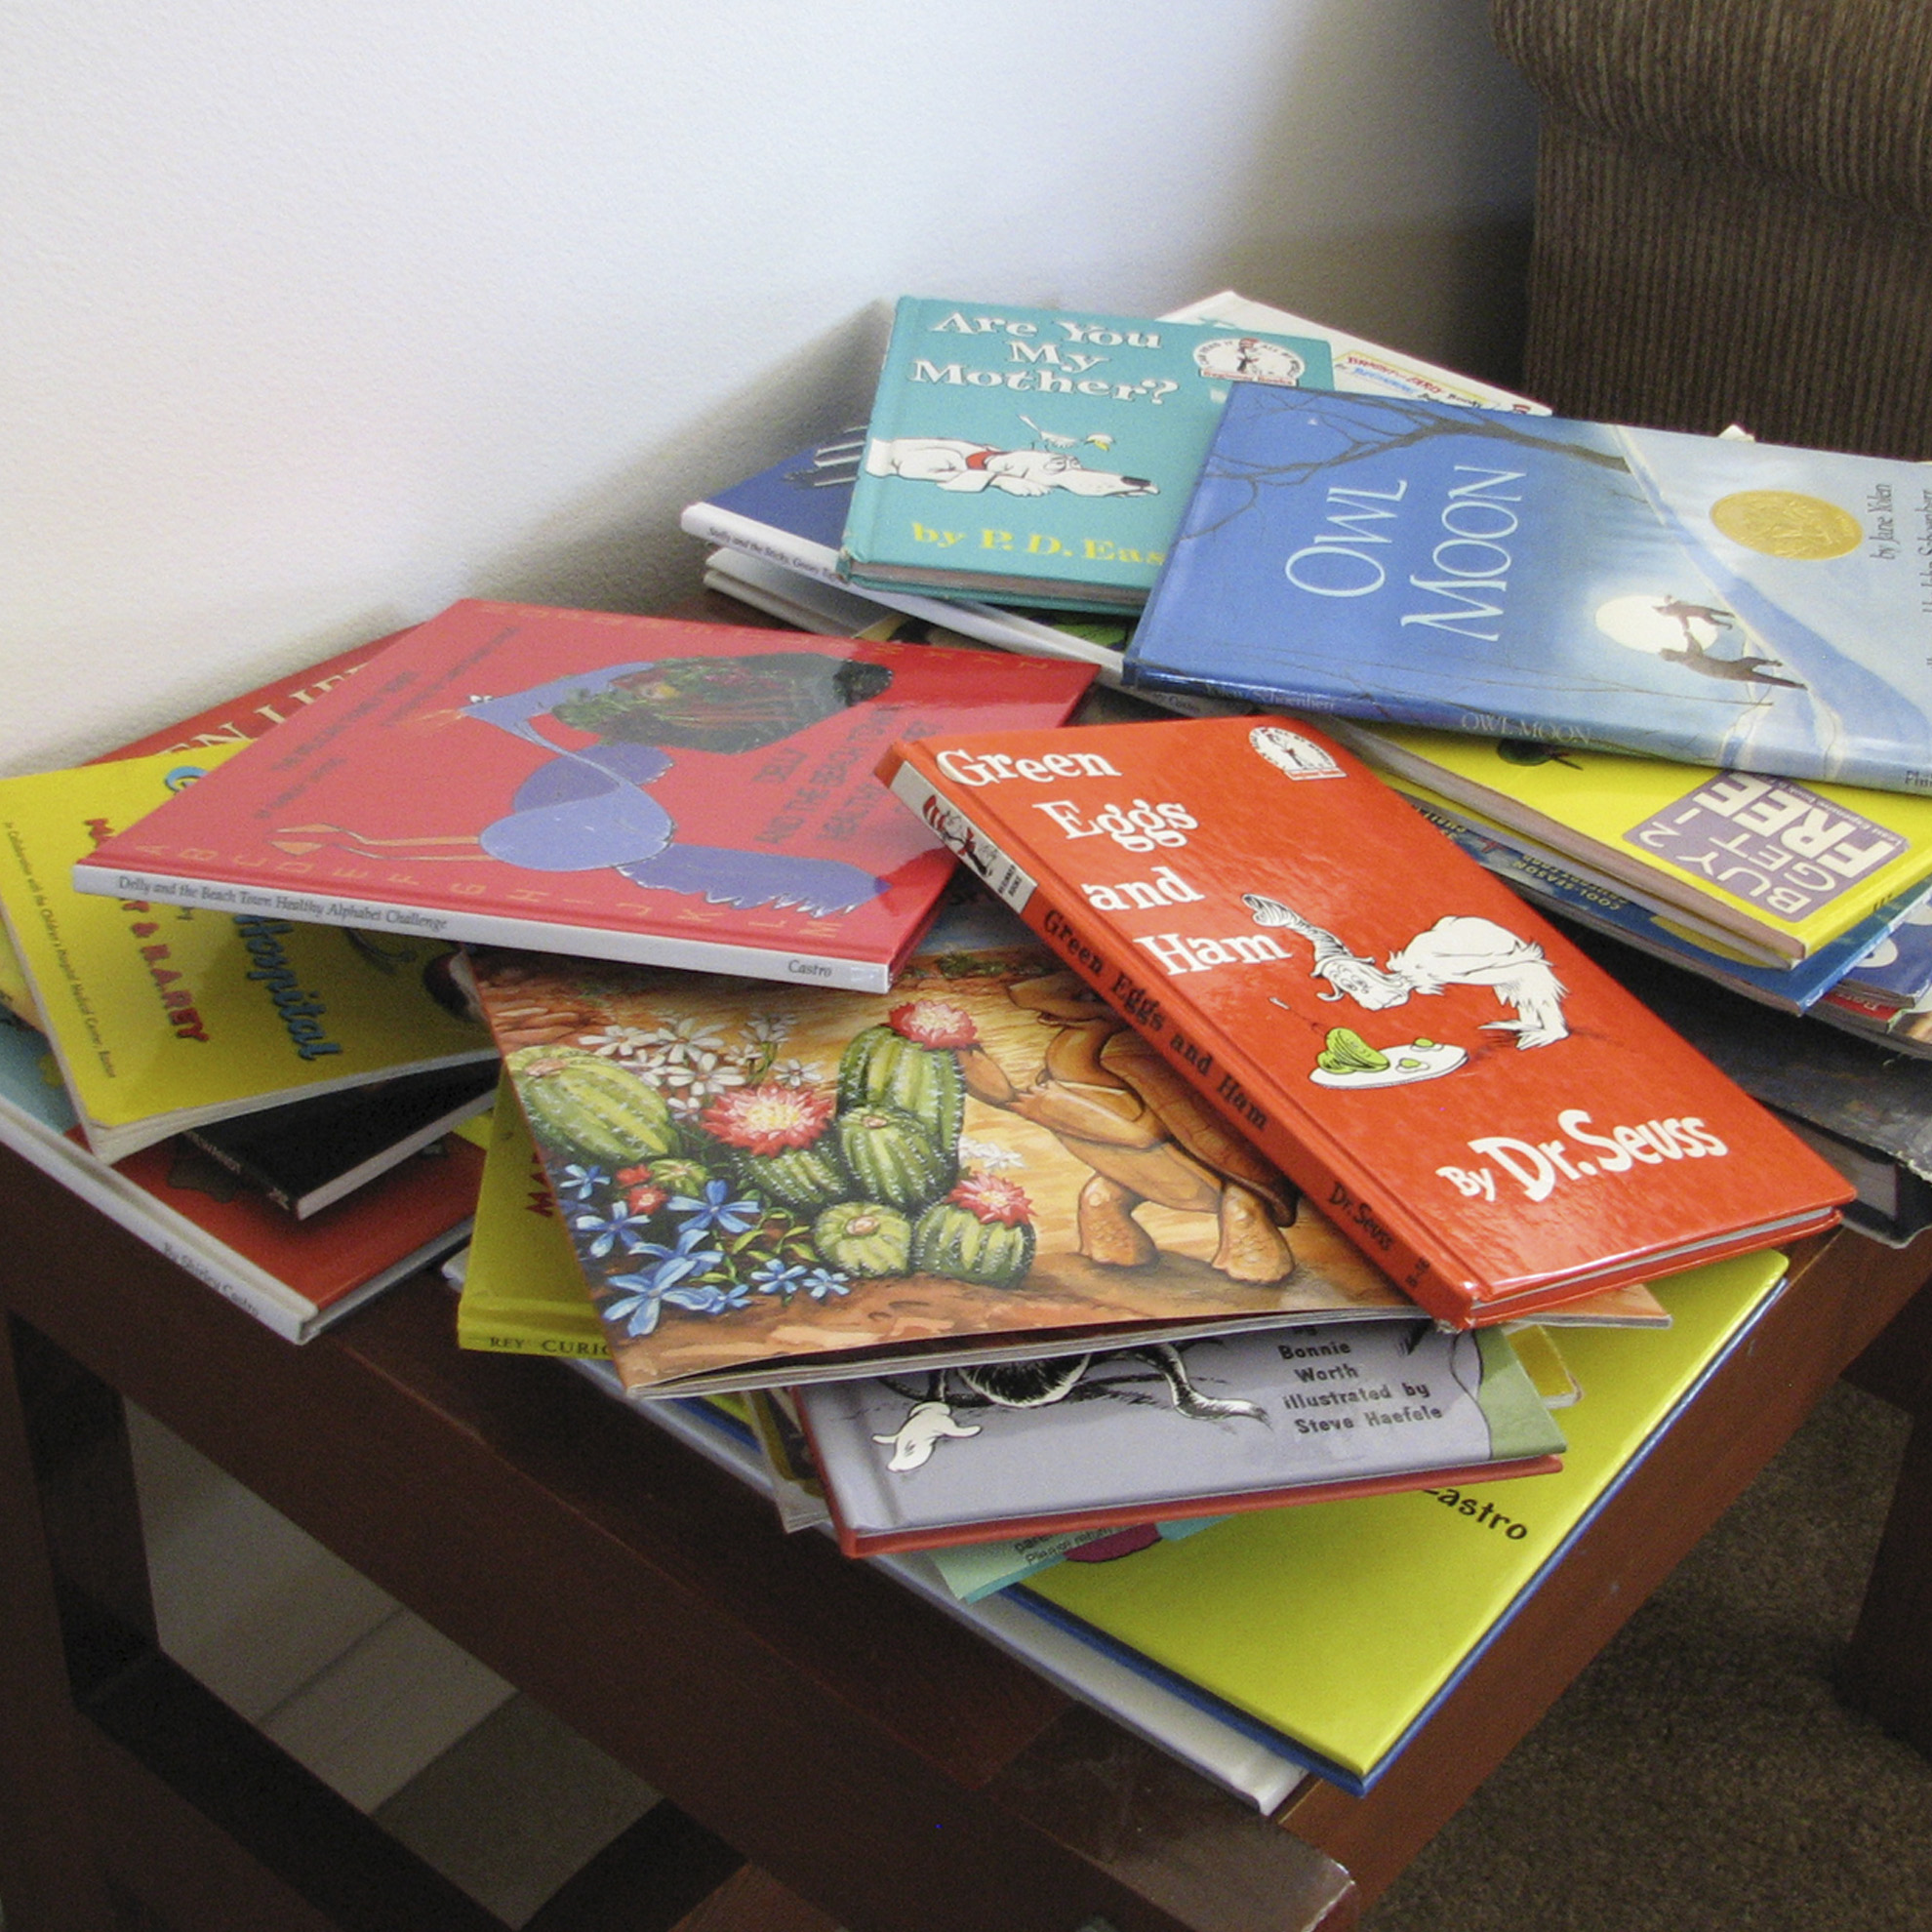 Pelican Family Series Children's Picture Books Blog Post 28 create a reader friendly home books on a table